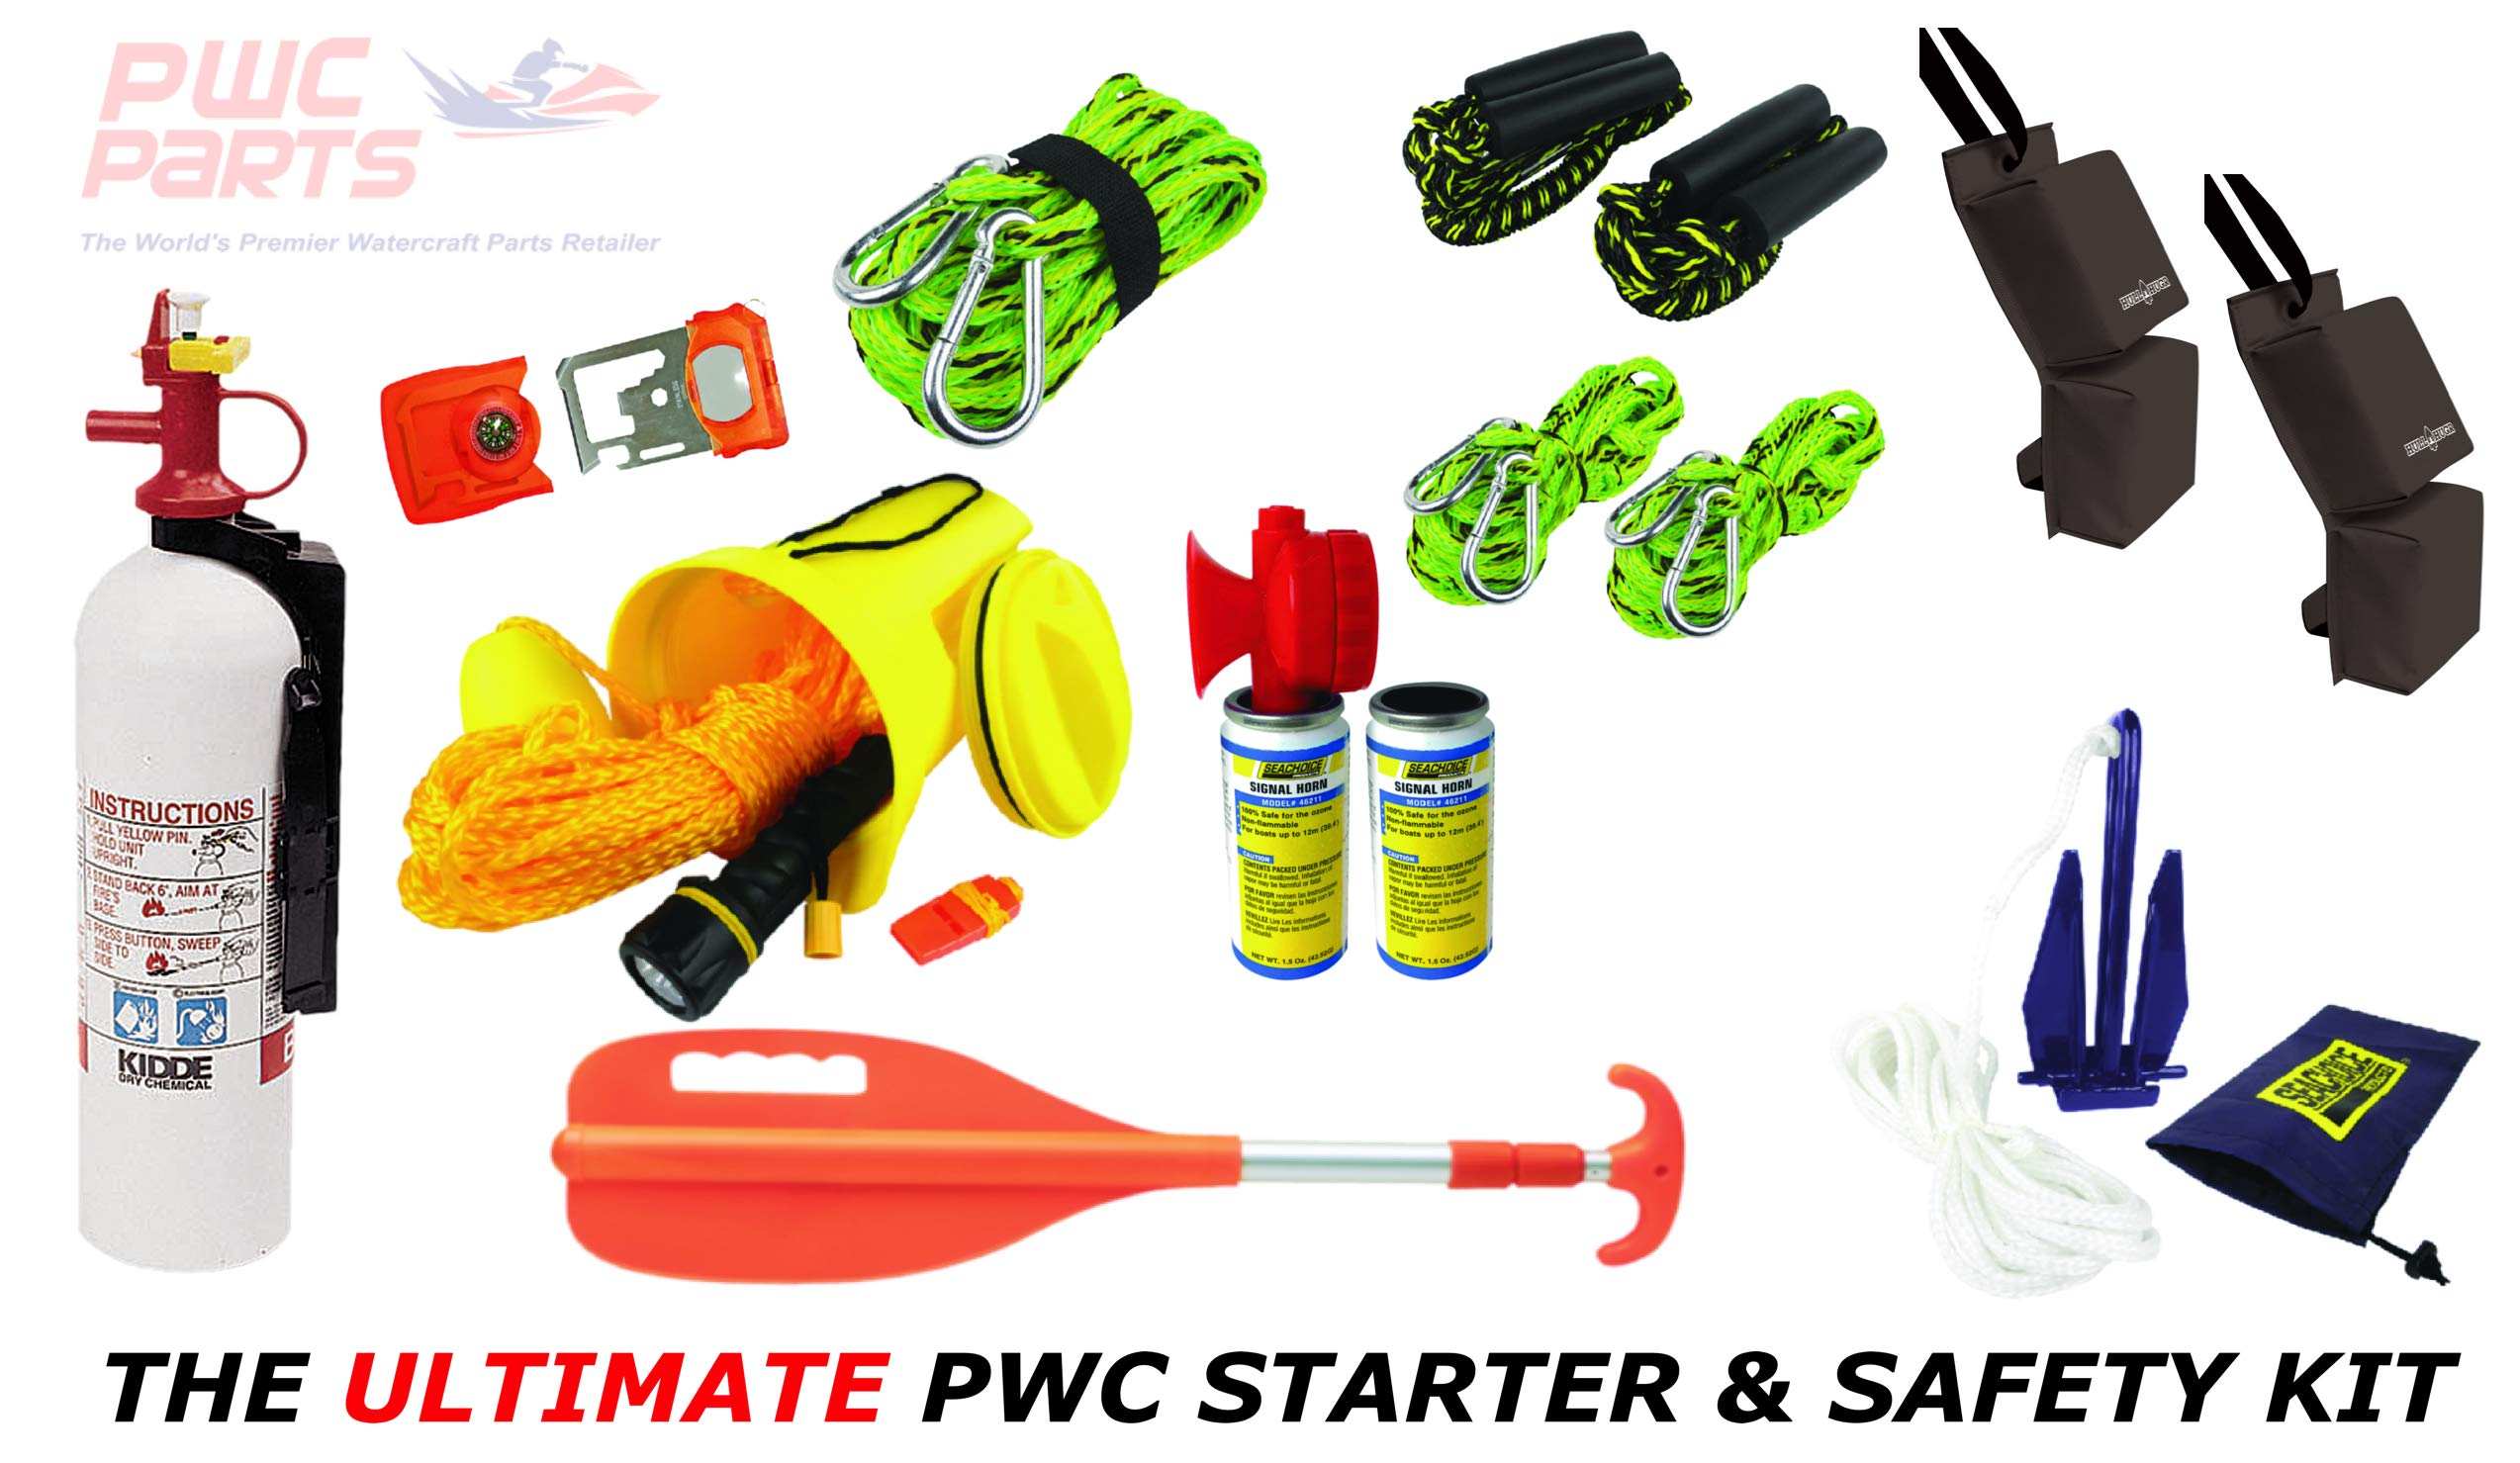 PWC Parts Ultimate Starter & Safety Kit for All Personal Watercraft SeaDoo Yamaha Kawasaki Honda Polaris GTX GTI RXP-X RXT-X GTR EX Spark FX VX Cruiser Sport Deluxe Limited XLT GP-R 1200 1300 800 XL by PWC Parts Co